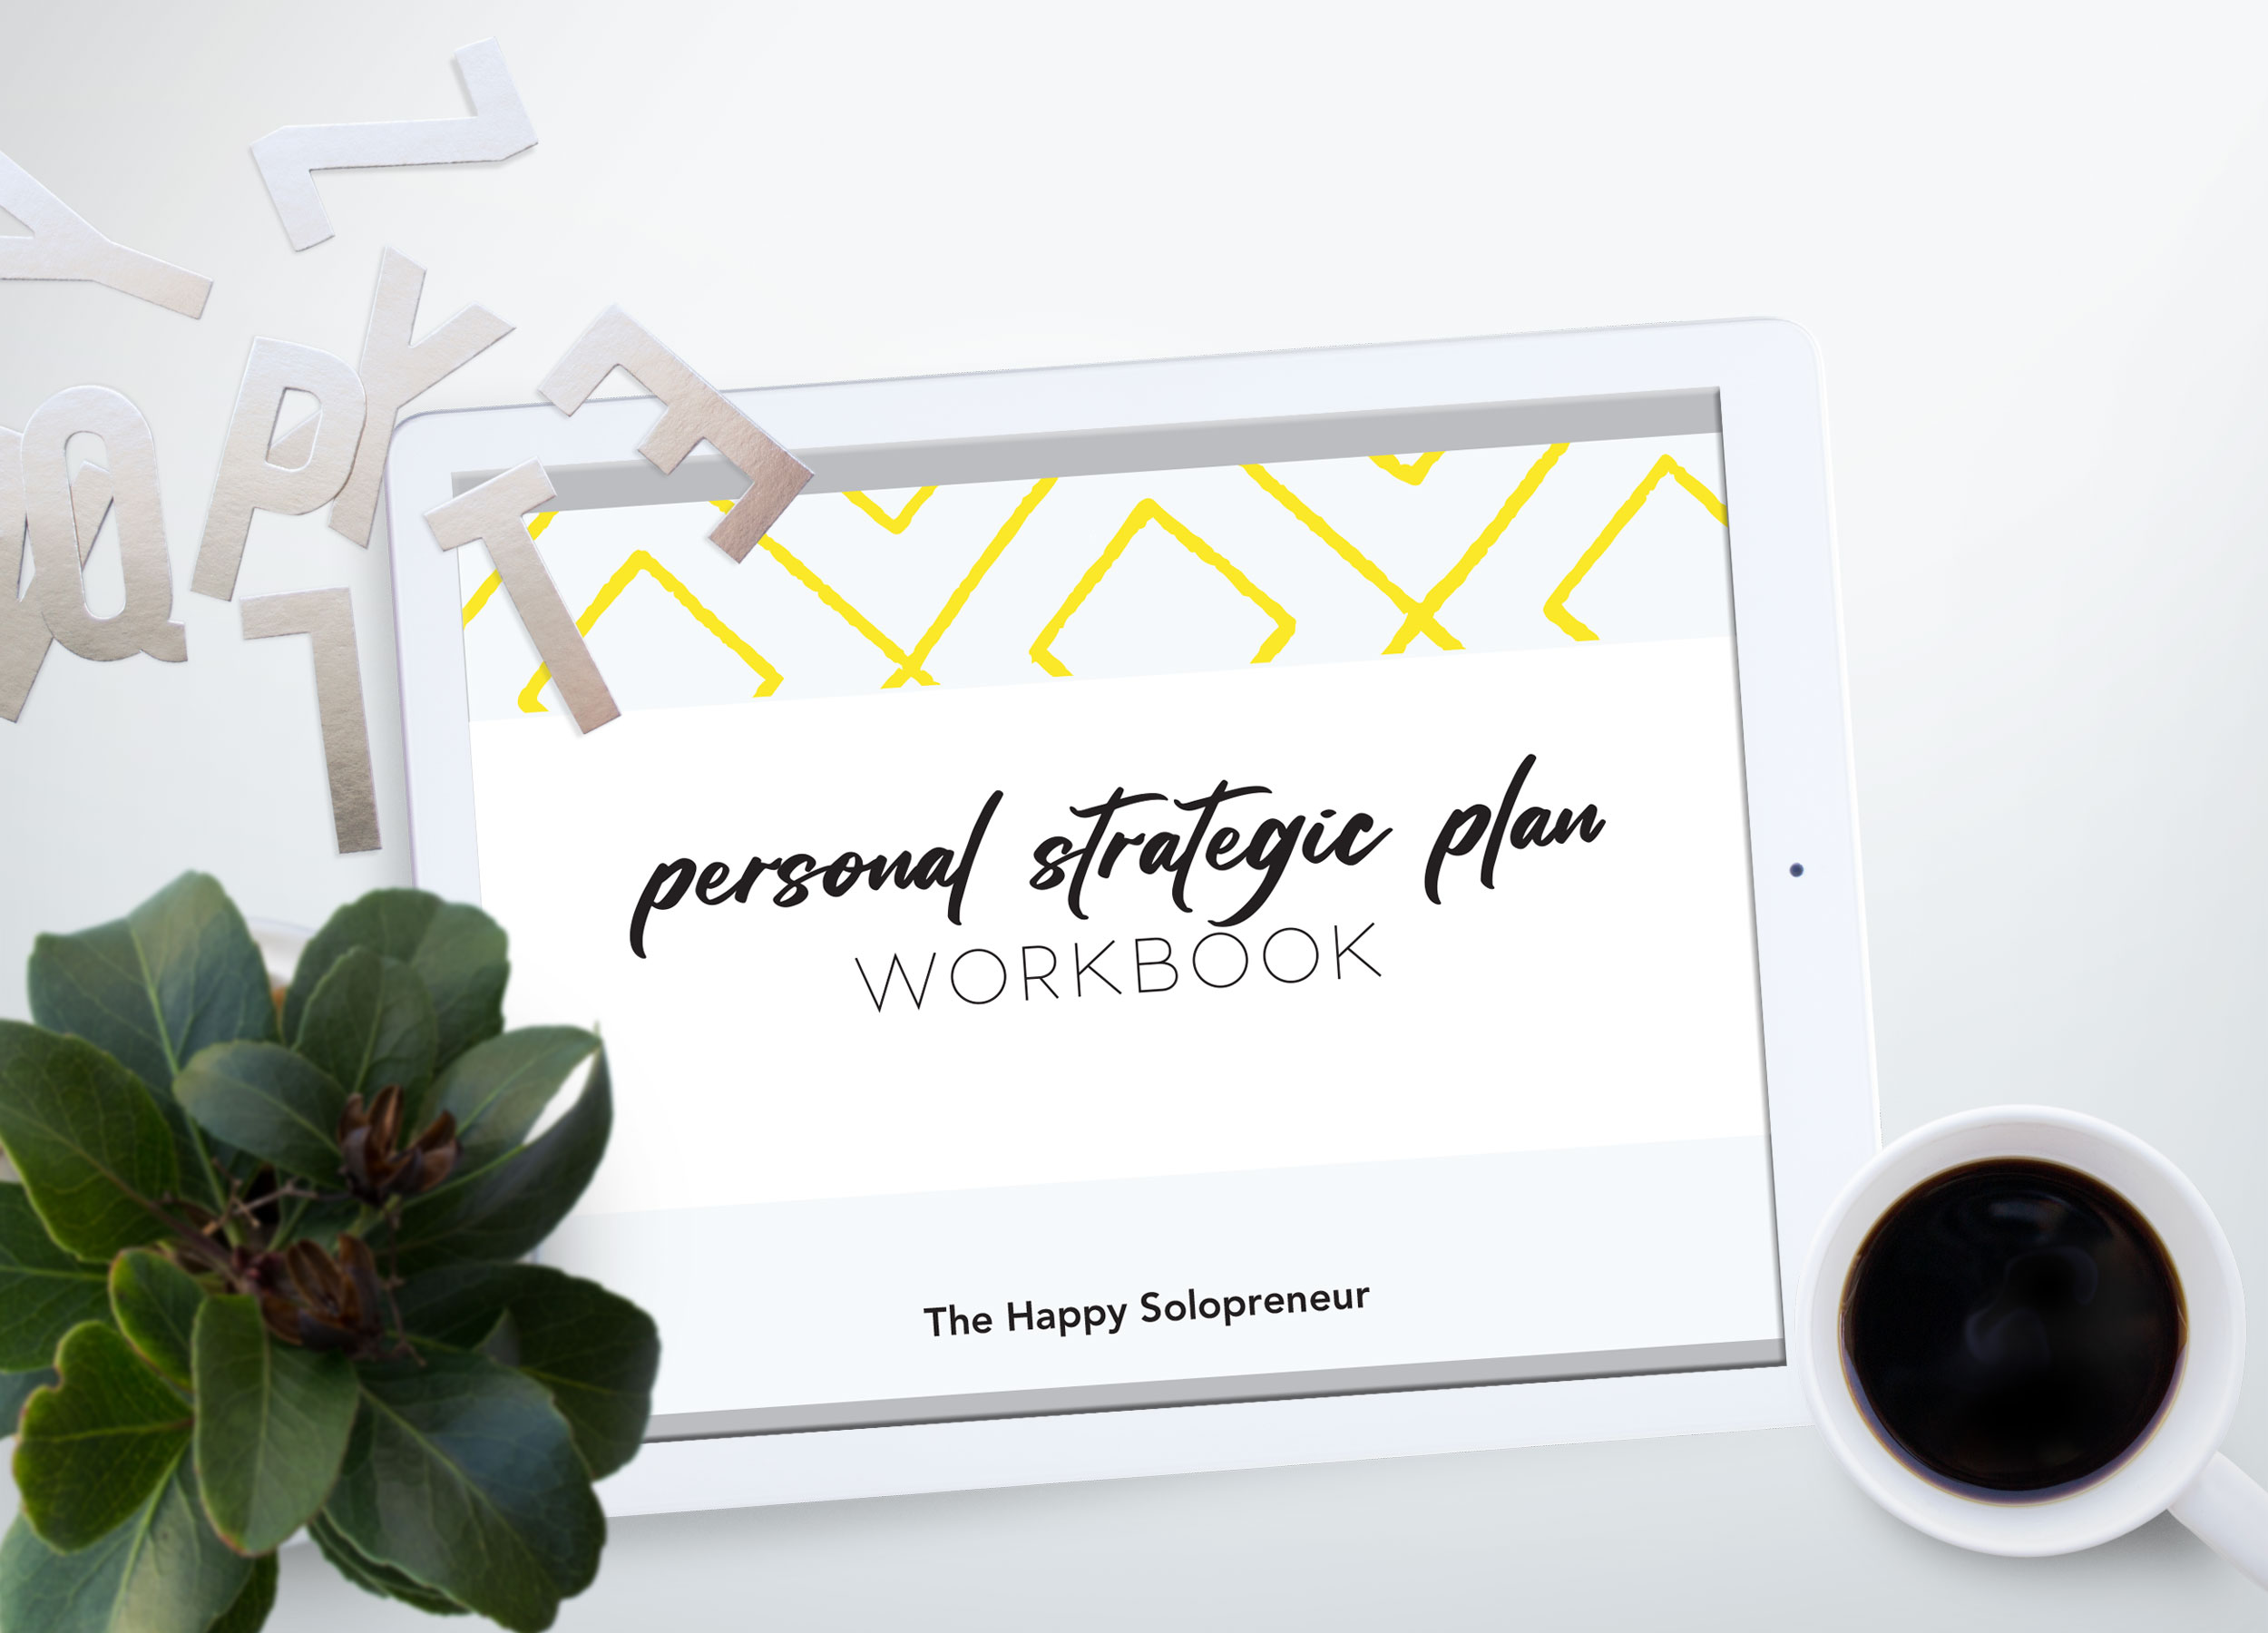 Why you need a personal strategic plan